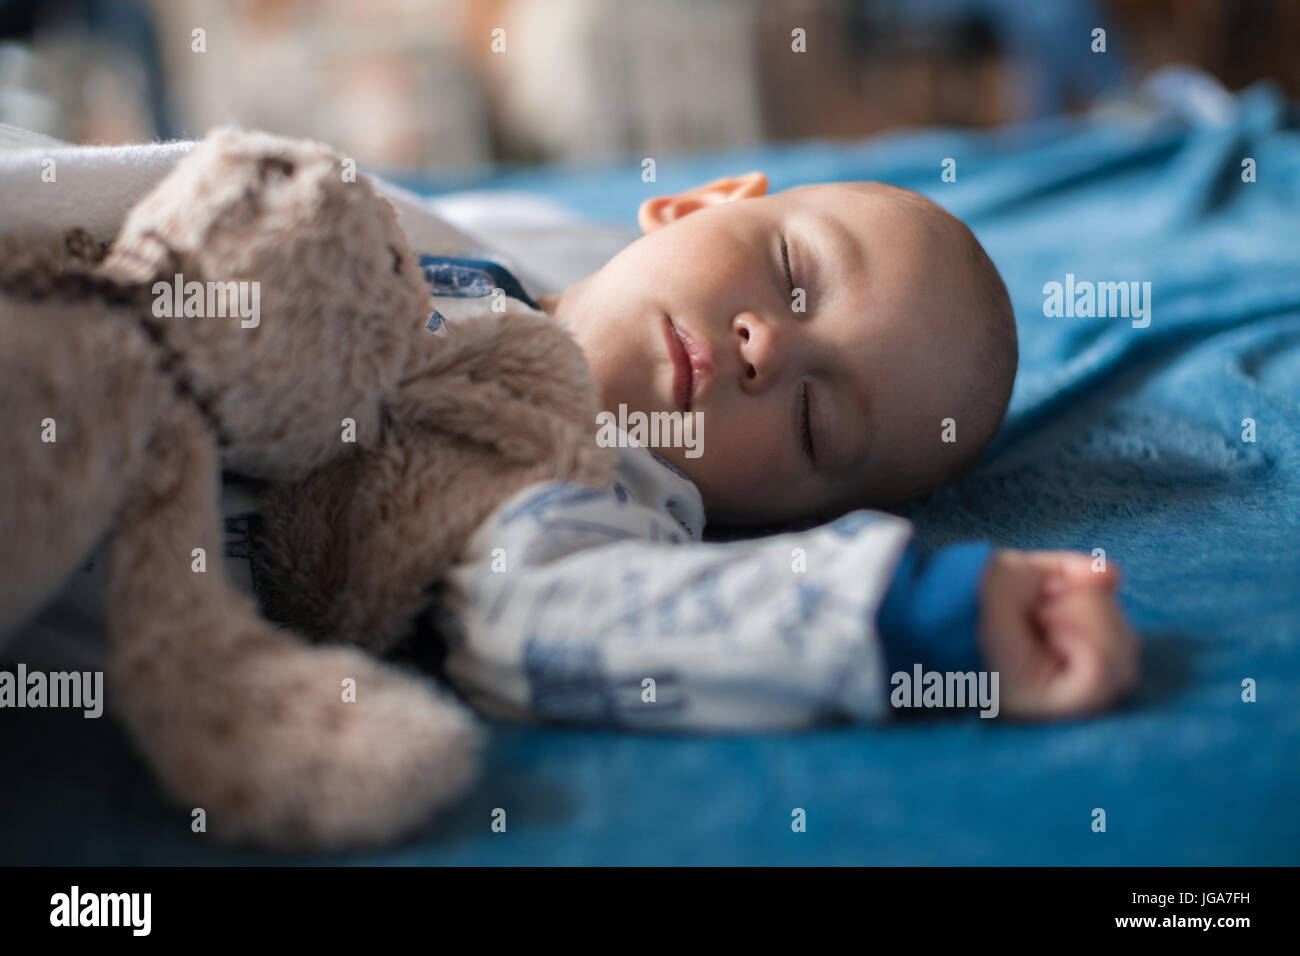 Cute baby boy sleeping with teddy bear Photo Stock